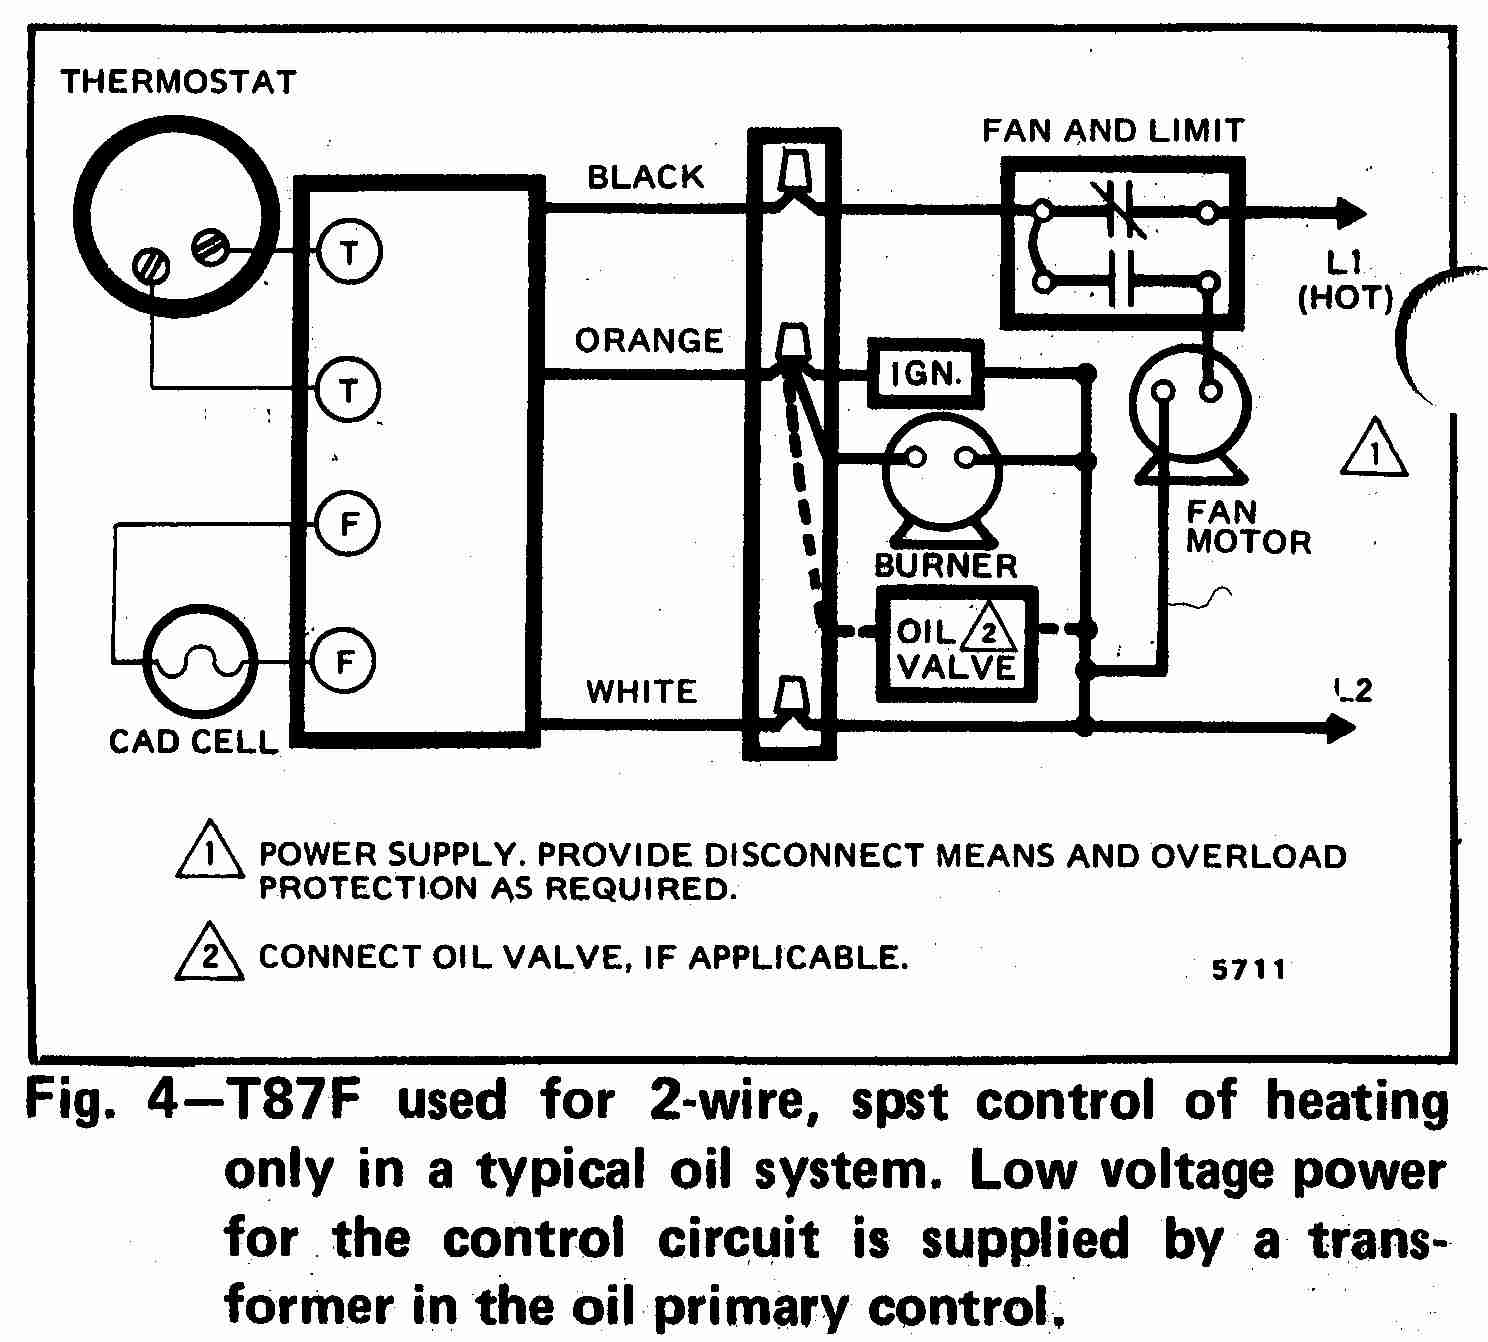 TT_T87F_0002_2W_DJF room thermostat wiring diagrams for hvac systems honeywell wiring diagram at cos-gaming.co